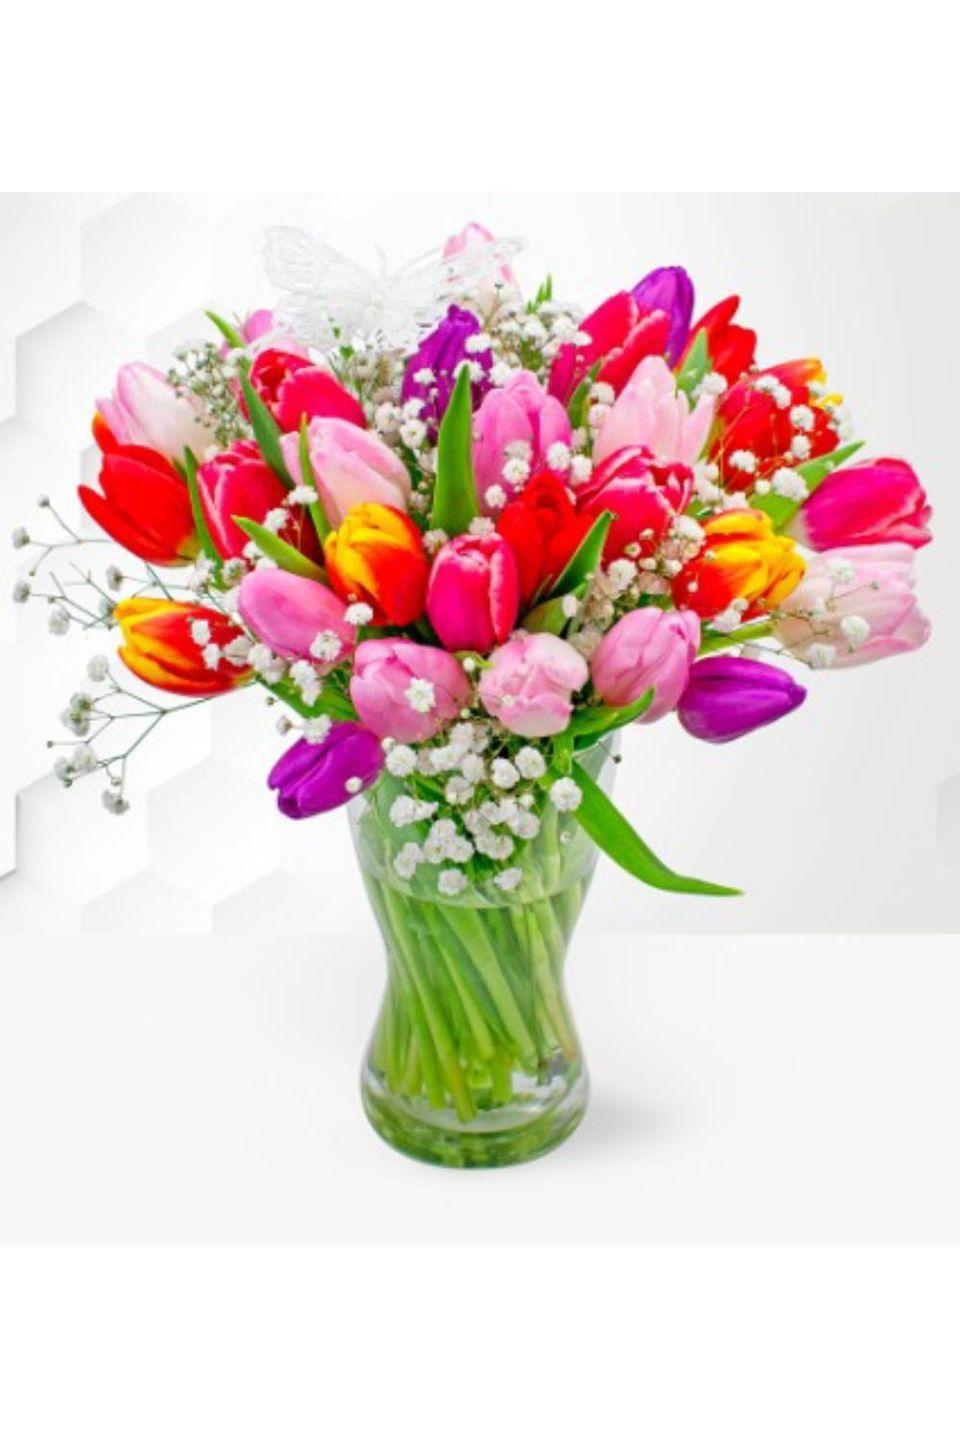 """<p><strong><a class=""""link rapid-noclick-resp"""" href=""""https://www.prestigeflowers.co.uk/next-day-flowers/spring-supreme?cPath=19"""" rel=""""nofollow noopener"""" target=""""_blank"""" data-ylk=""""slk:BUY NOW"""">BUY NOW</a> Tulip Supreme £19.99,</strong> <strong>Prestige Flowers</strong></p><p>Thanks to their network of florists all over the UK, Prestige Flowers can deliver on the day to anywhere in the country, providing you order by 3pm. They have bouquets for every occasion, from anniversaries, congratulations or to give sympathy, ranging from £29.99 to £99.99.</p>"""